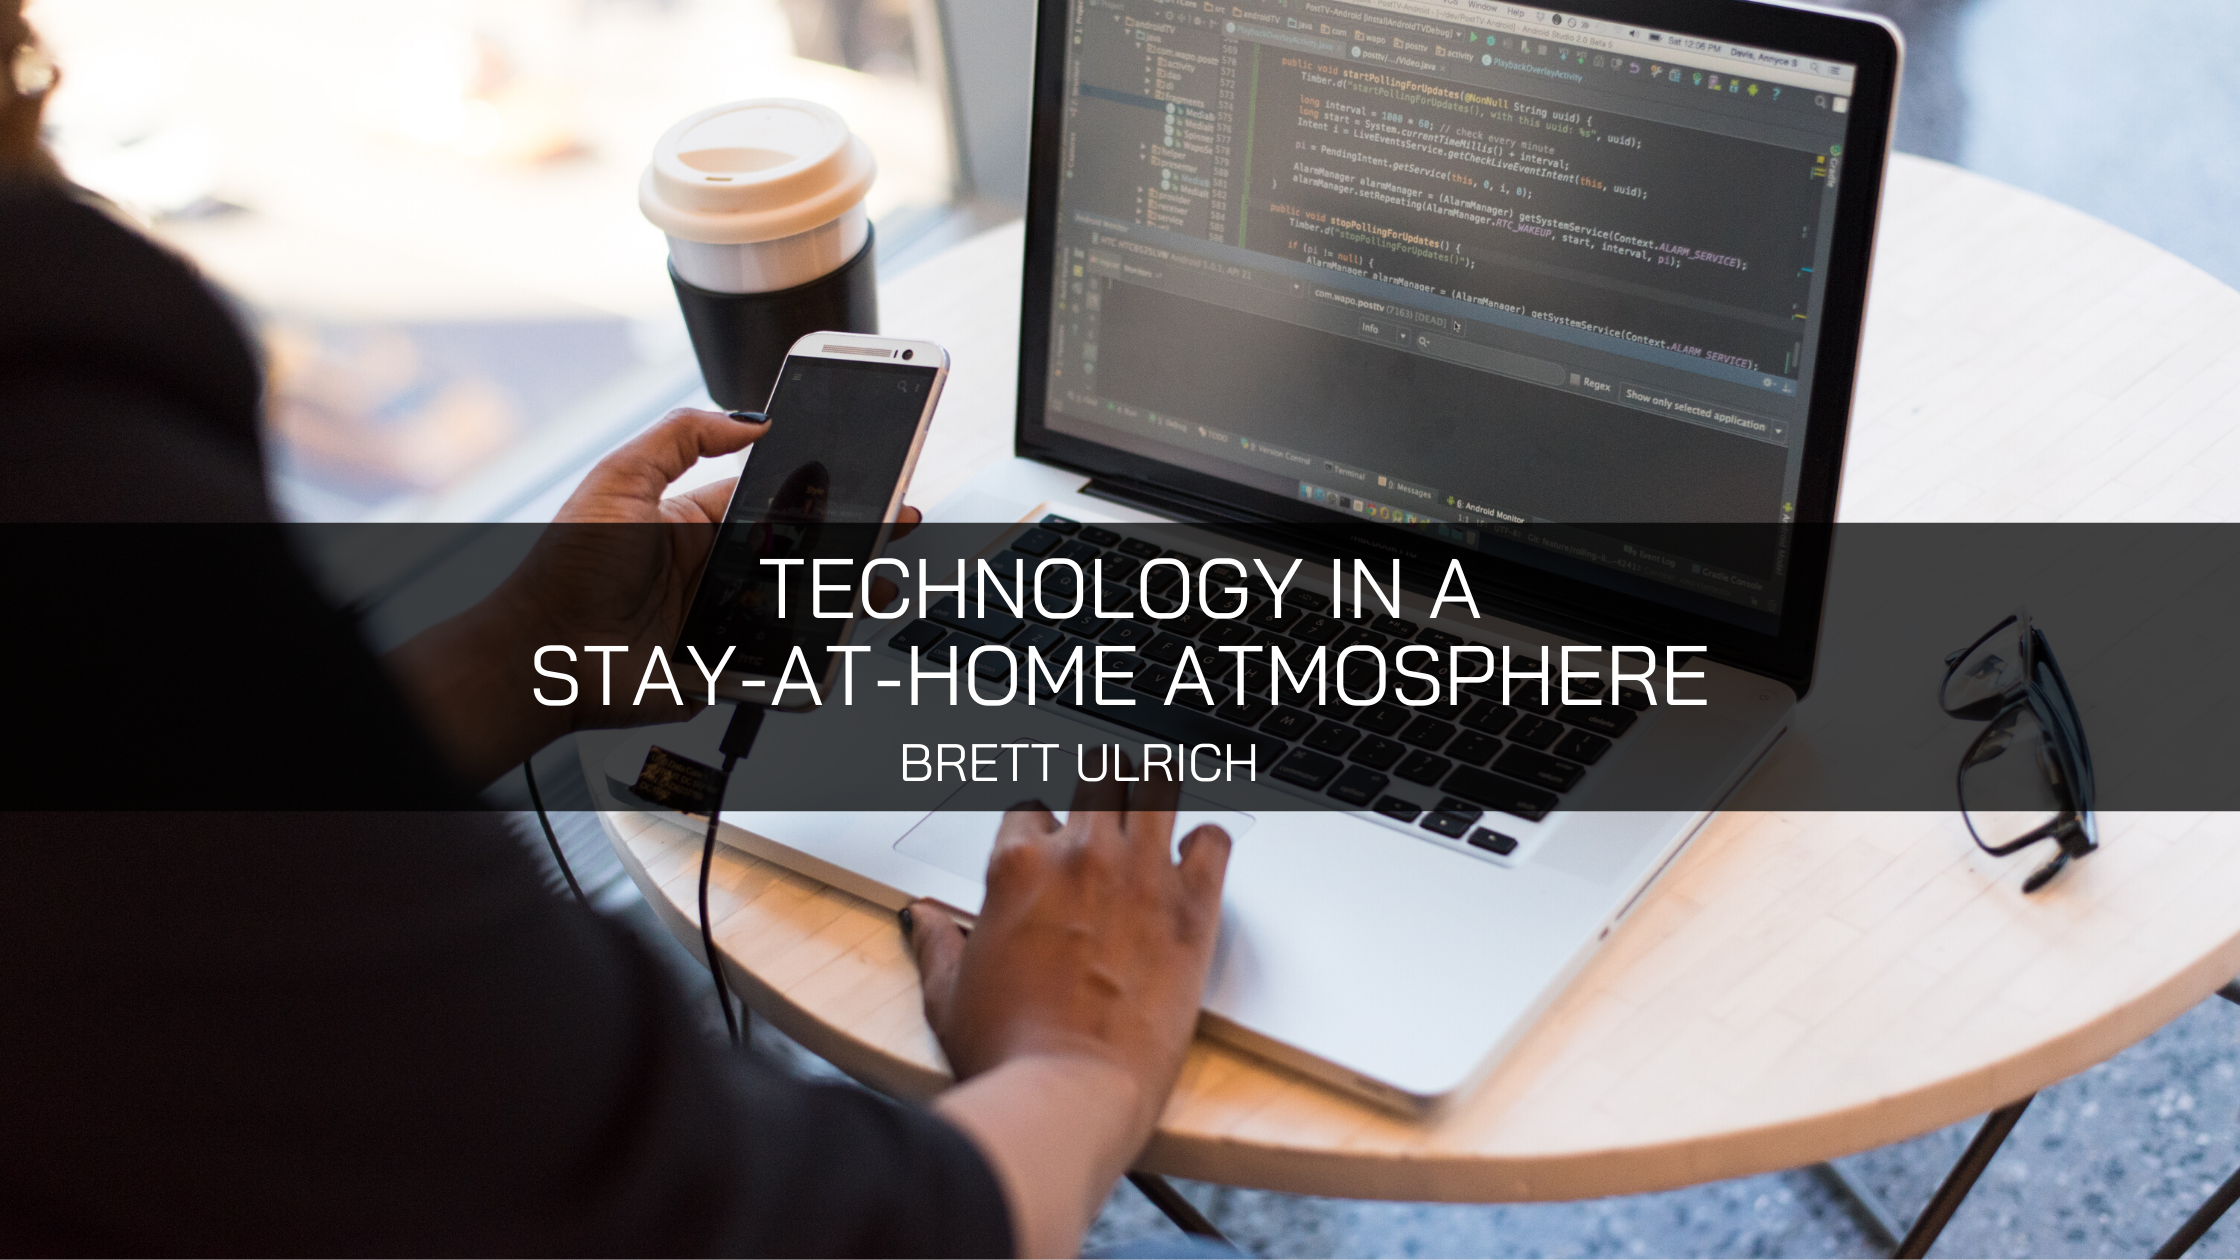 Brett Ulrich Discusses Technology in a Stay-at-Home Atmosphere